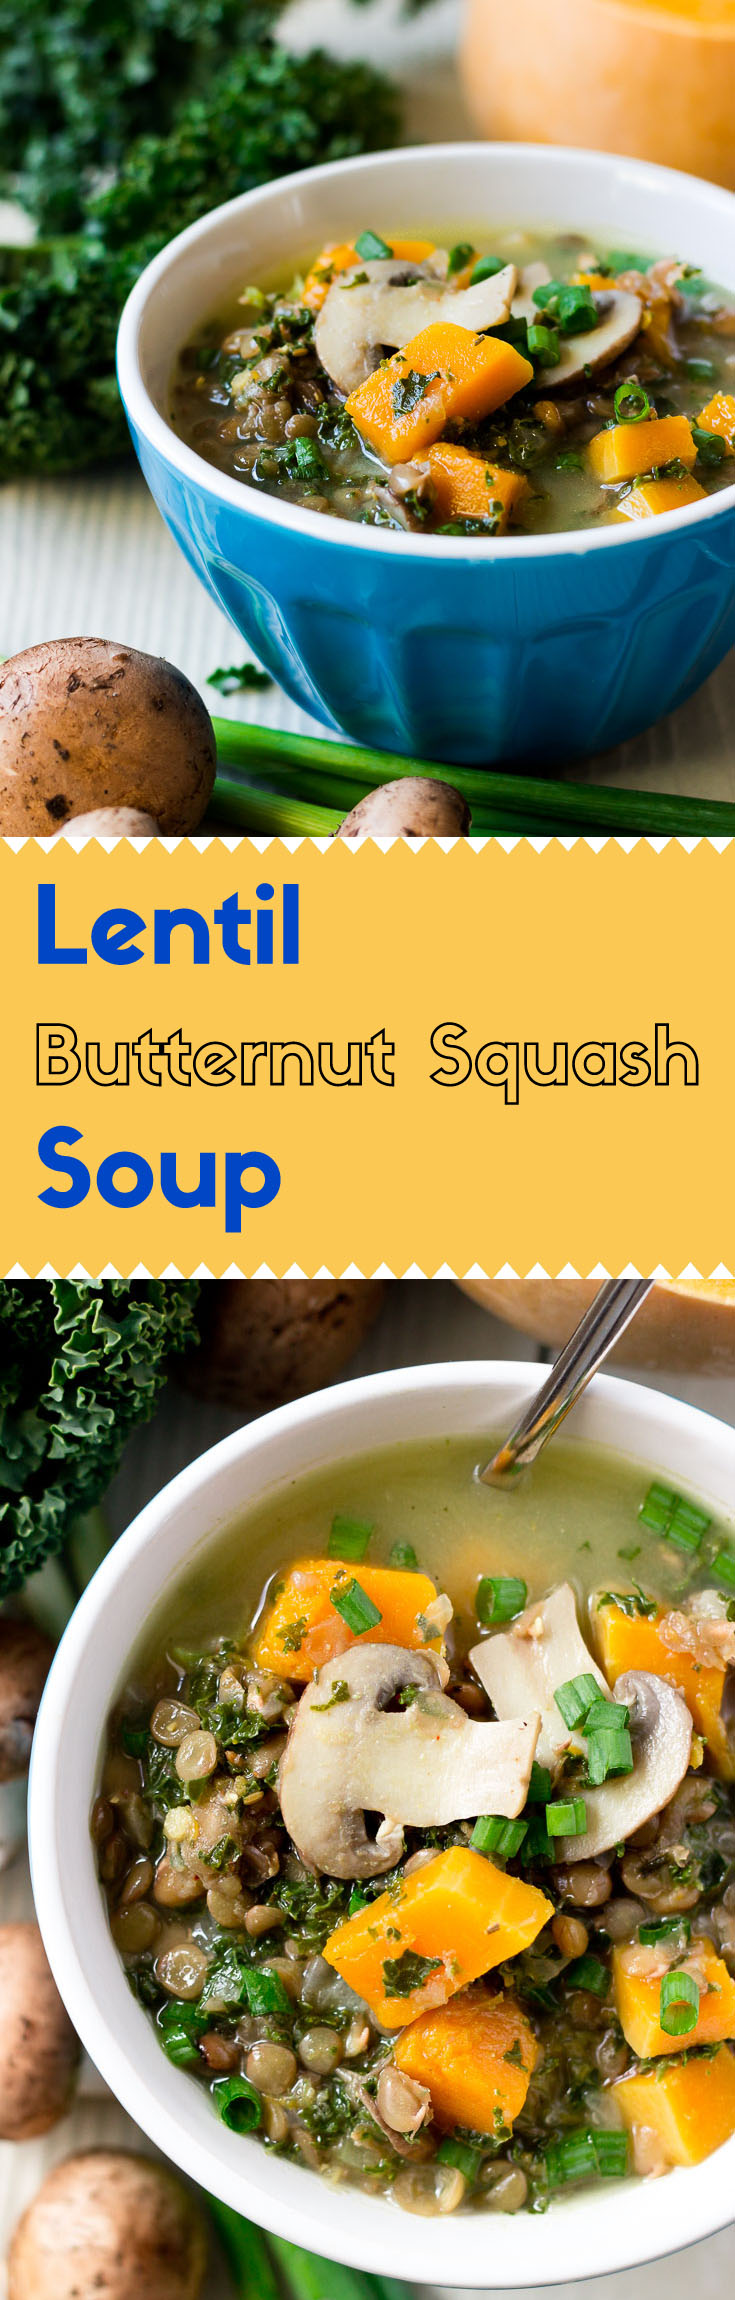 This vegan lentil butternut squash soup is a well-balanced meal with loads of nutrition and flavor. Both kids and adults will appreciate this hearty winter soup.